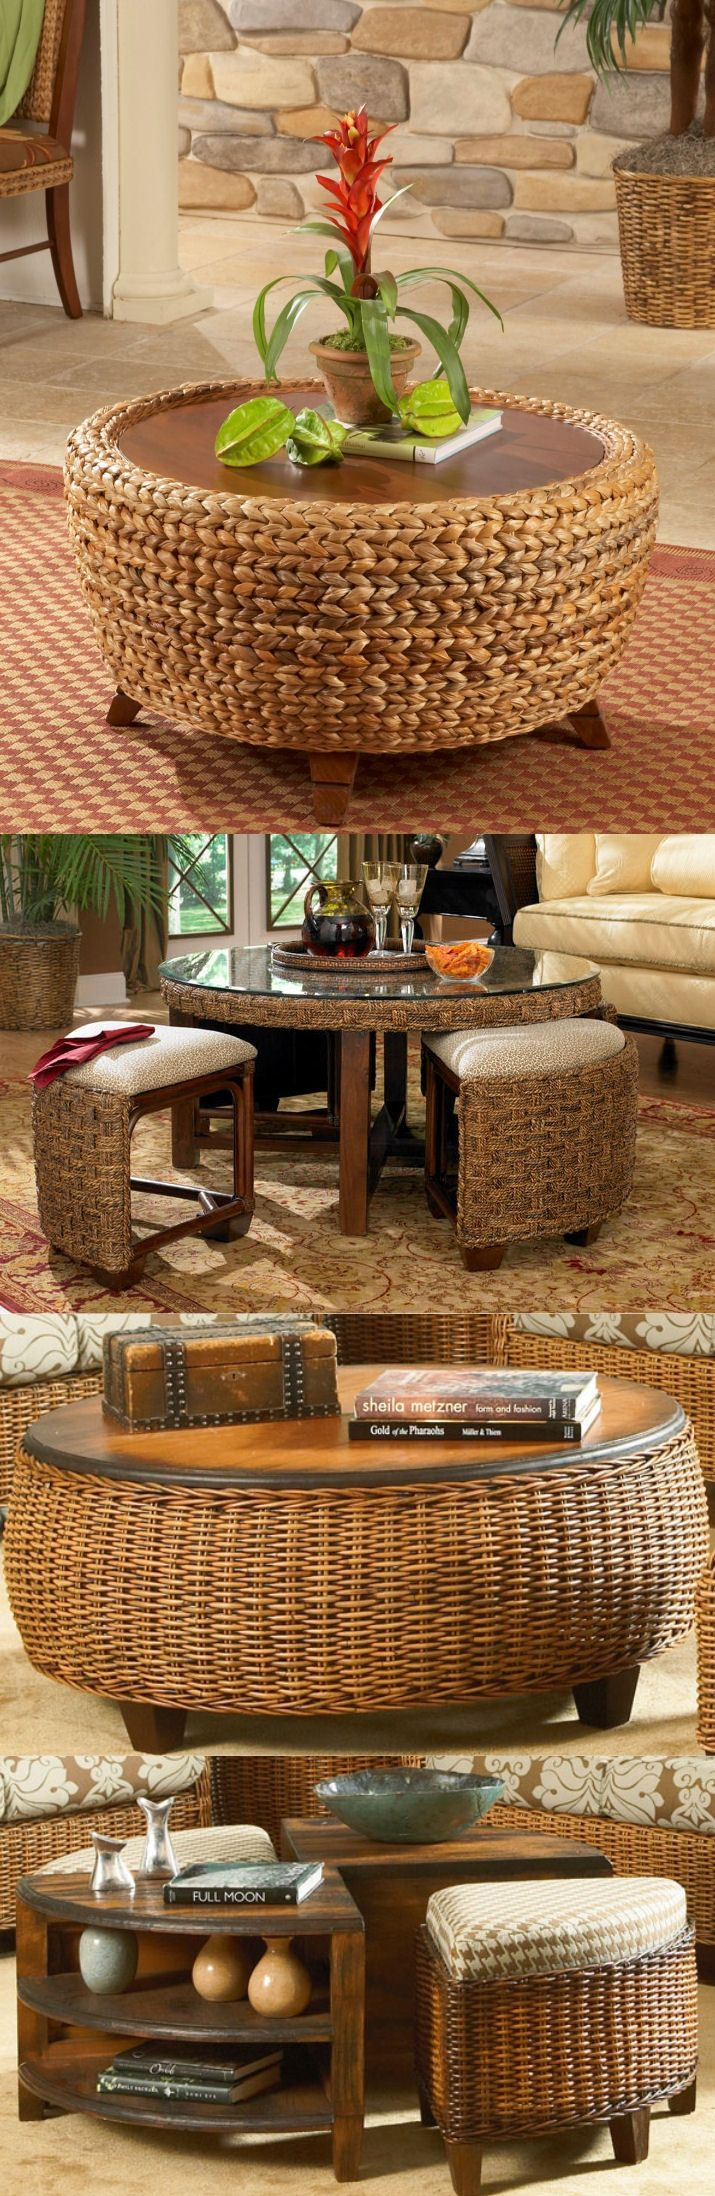 352 best Wicker Furniture images on Pinterest | Beach, Beans and ...